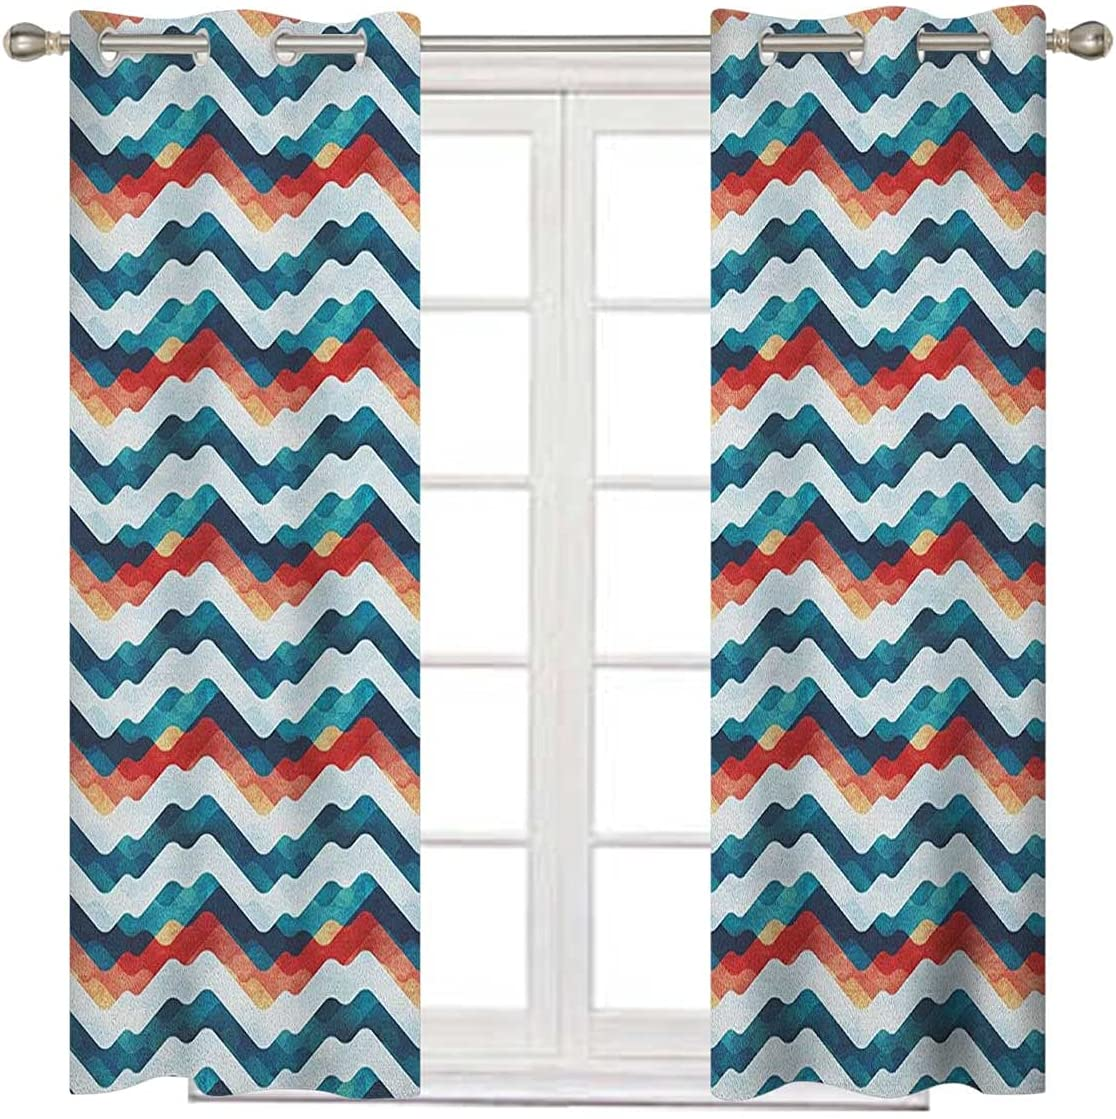 Abstract Curtains for Bombing free shipping Bedroom 84 Inches Whi Some reservation Teal Vermilion Long